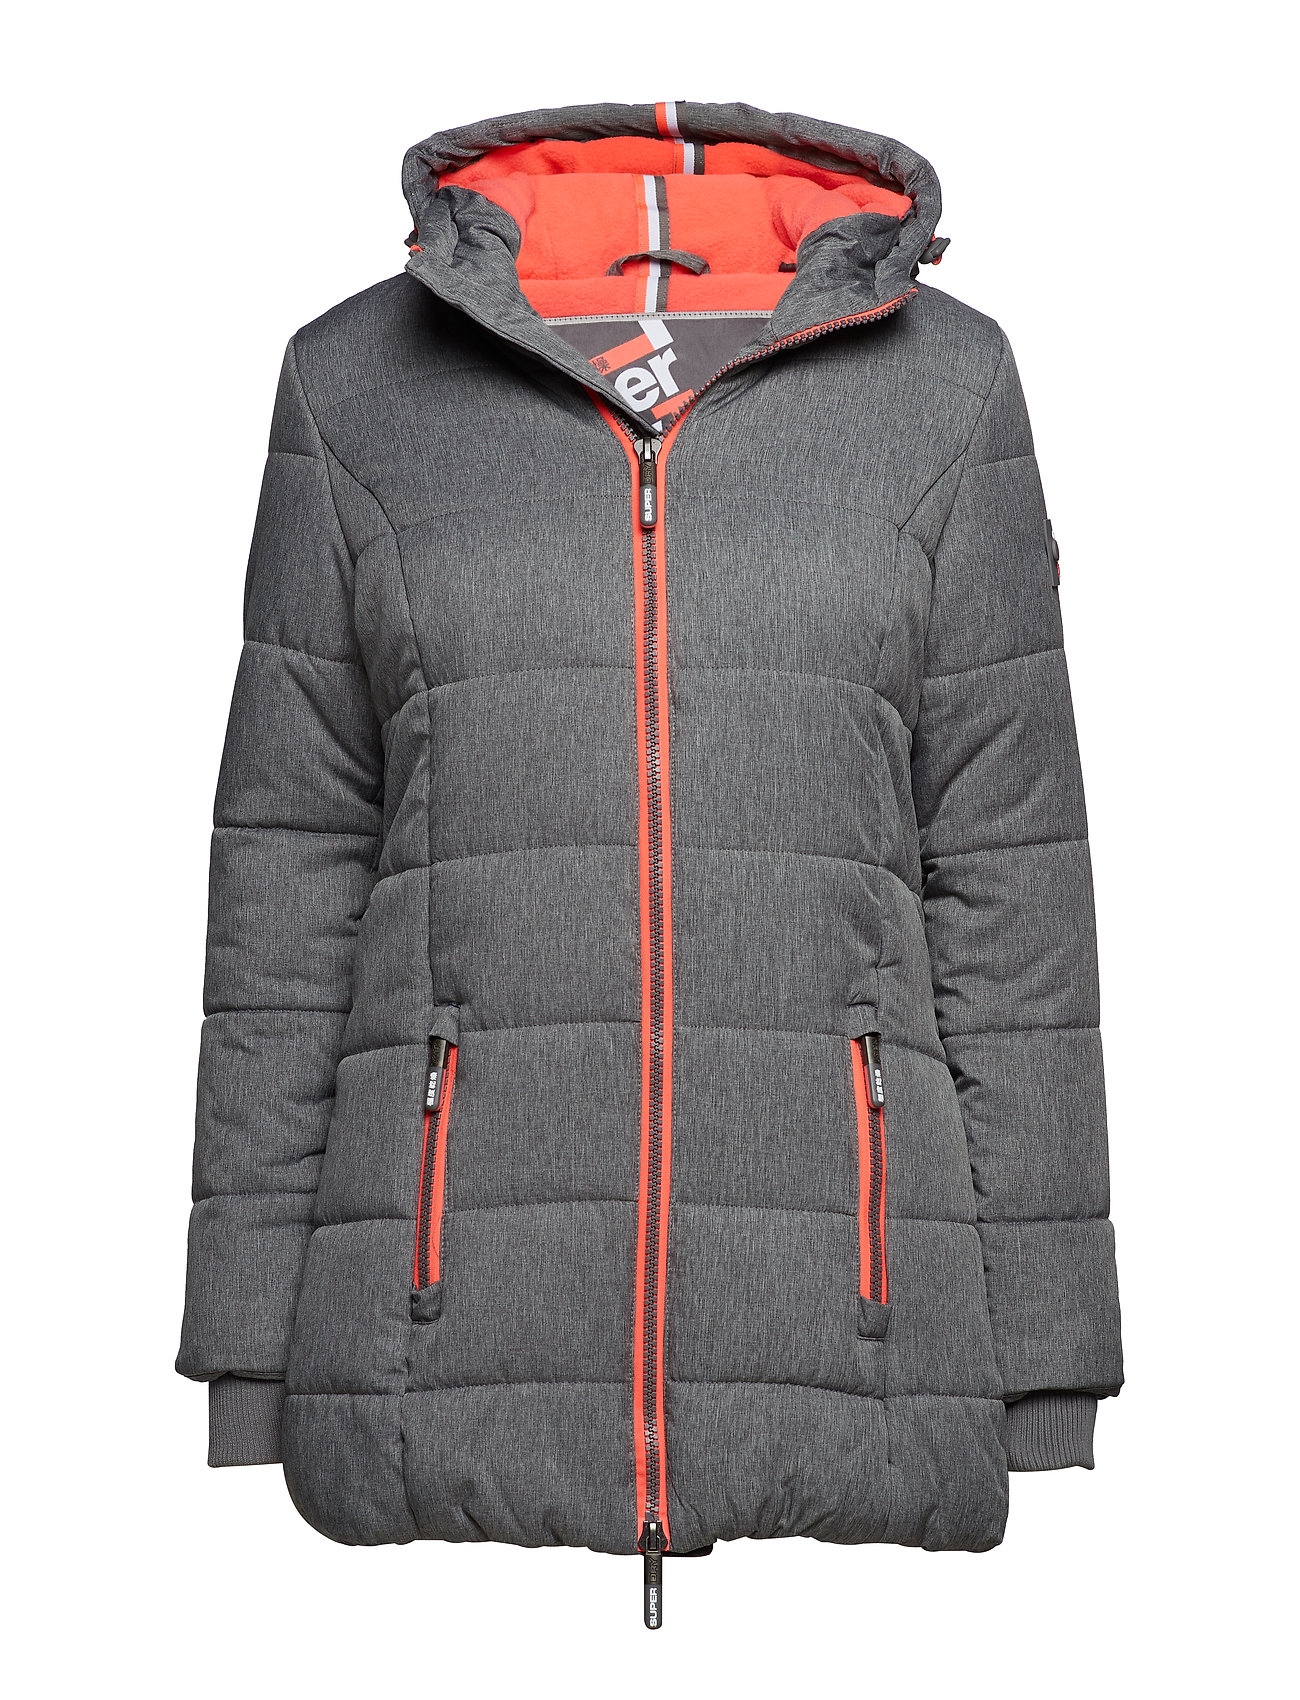 Superdry TALL SPORTS PUFFER - GREY MARL